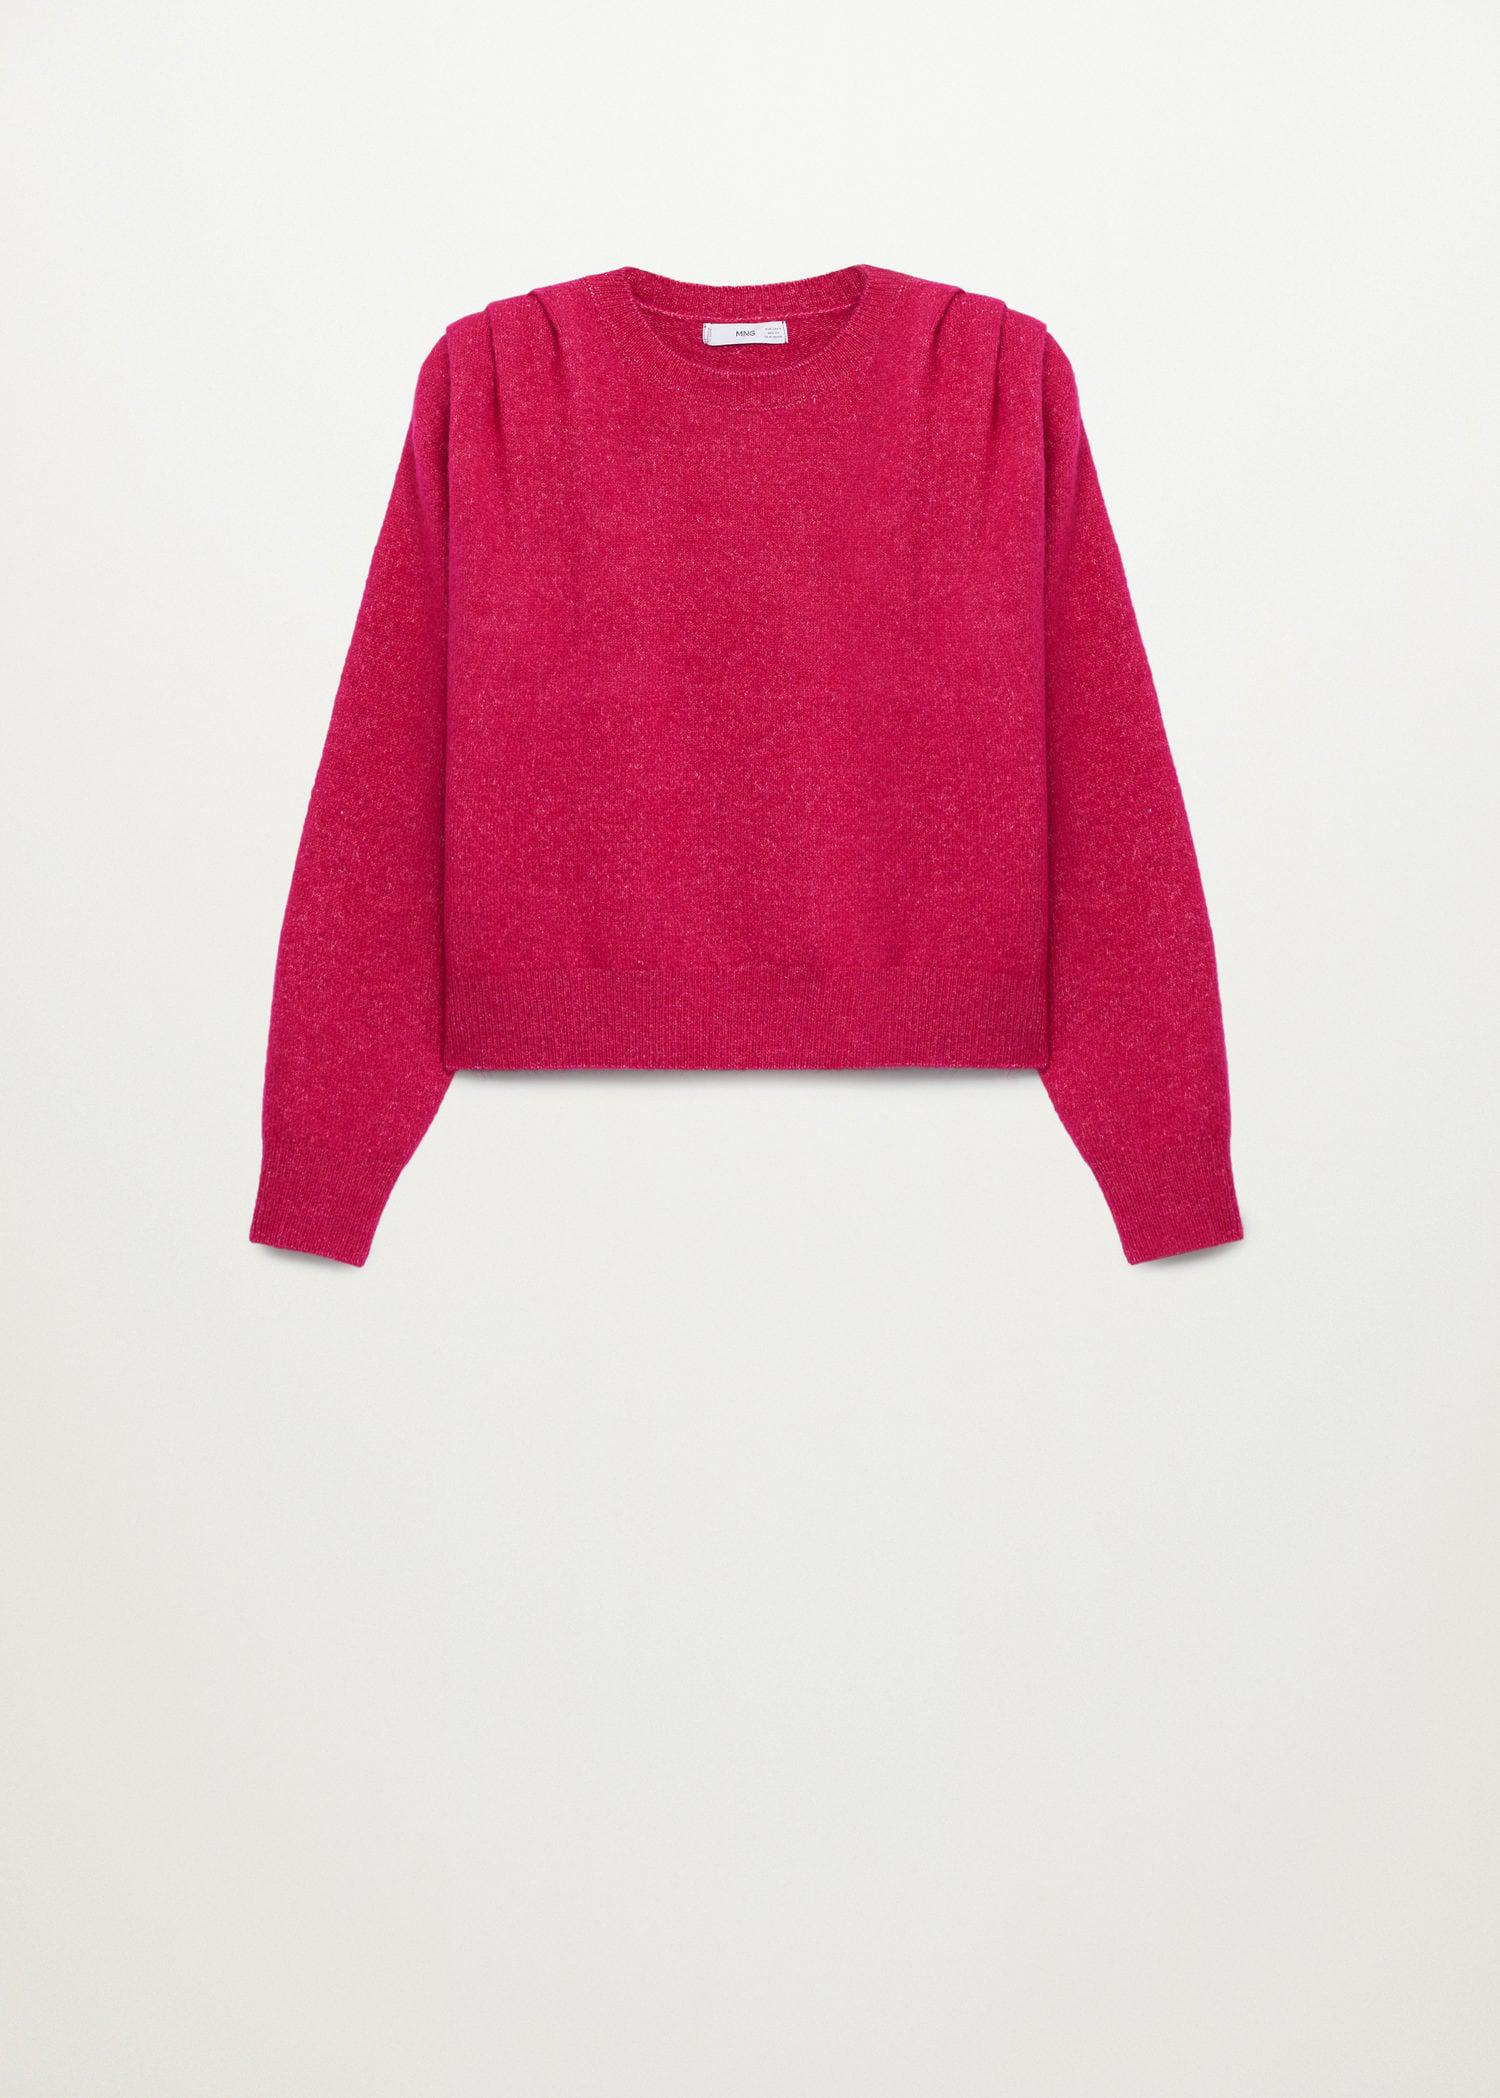 Pleated knit sweater 6